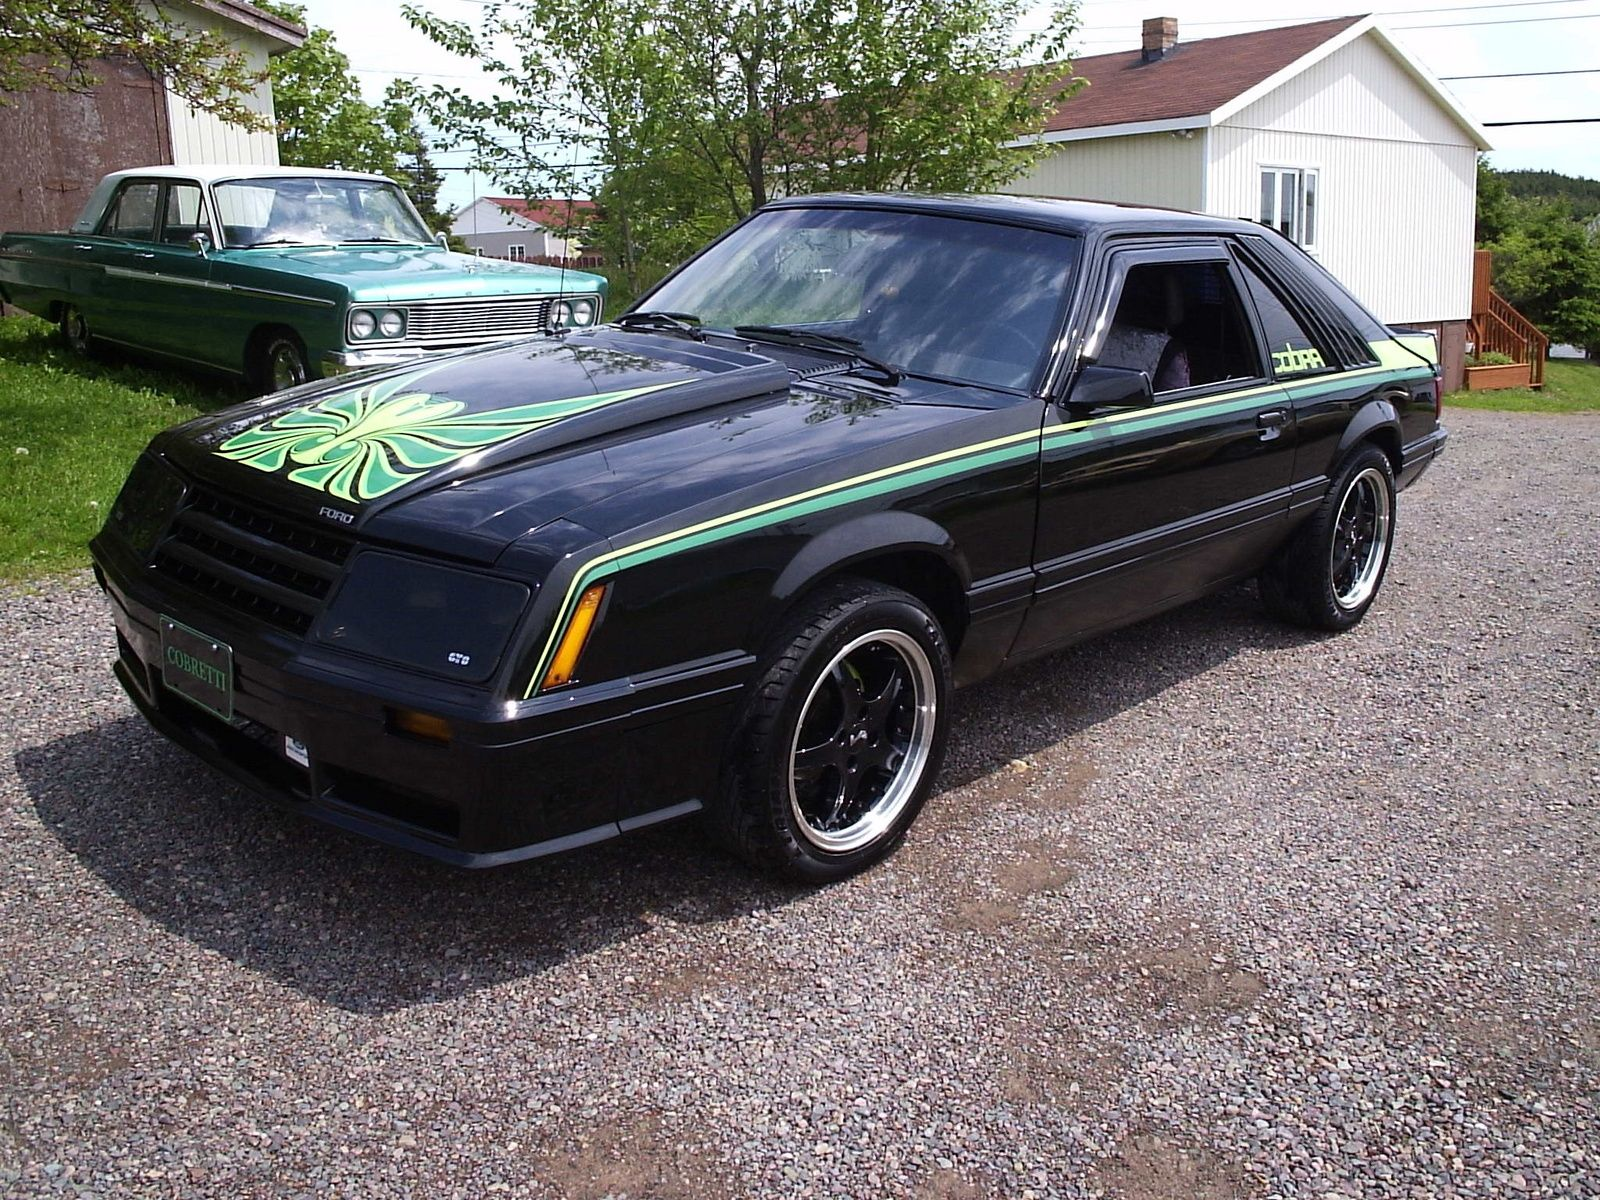 1980 ford mustang pictures cargurus the fox rod mustang